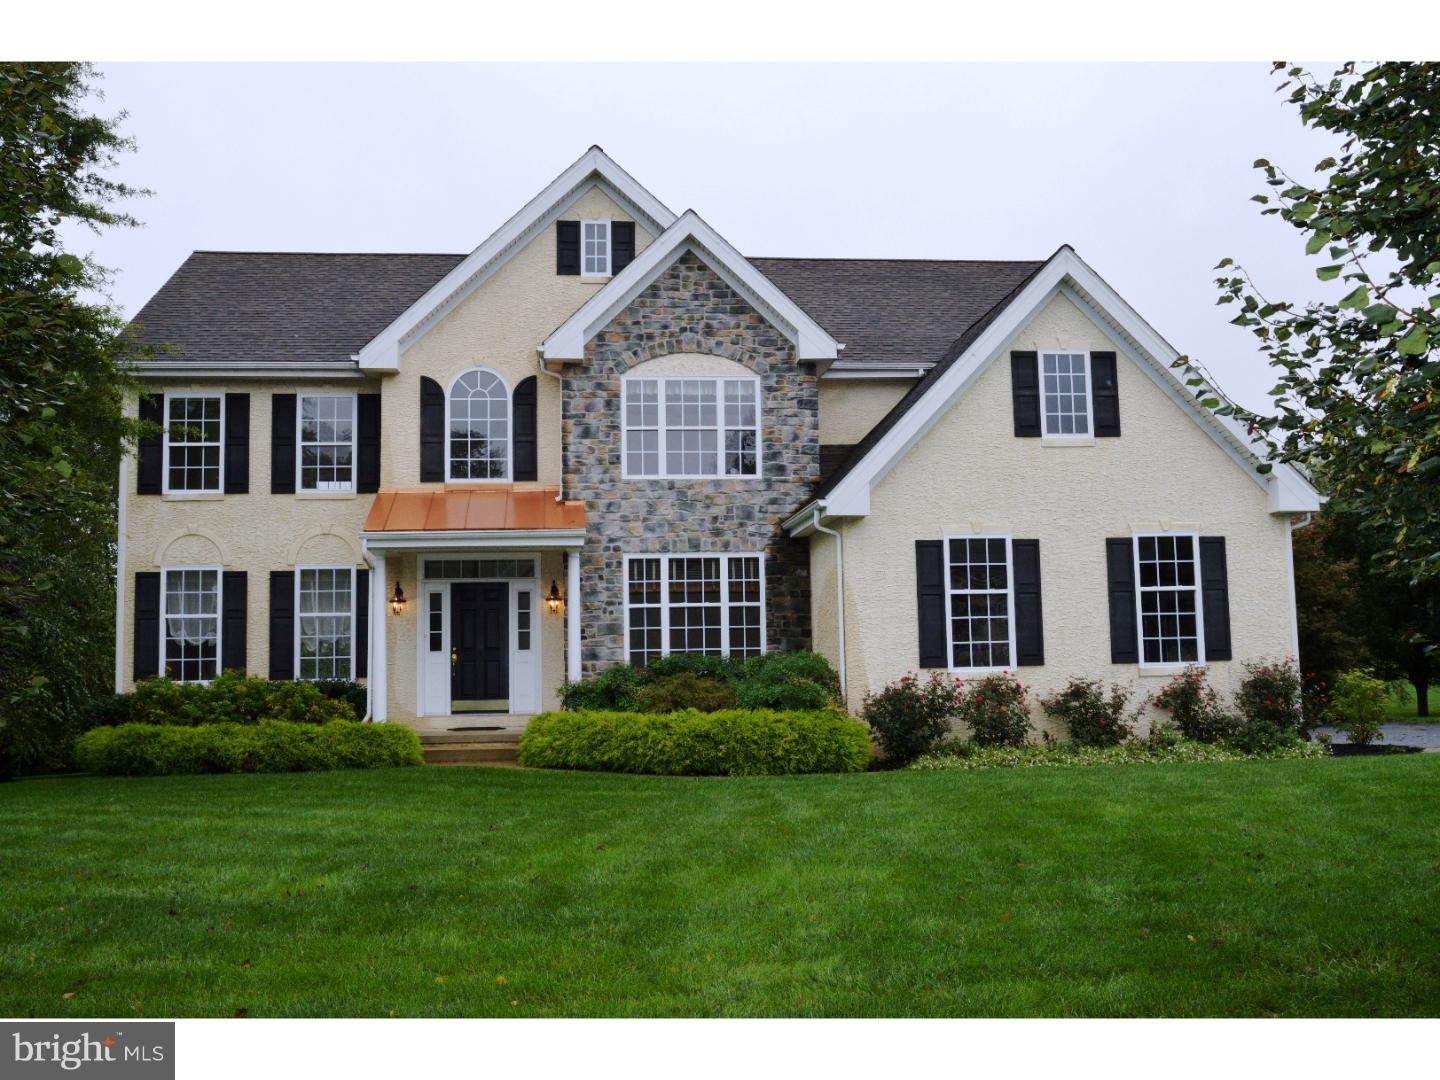 115 FORD DRIVE, LINCOLN UNIVERSITY, PA 19352